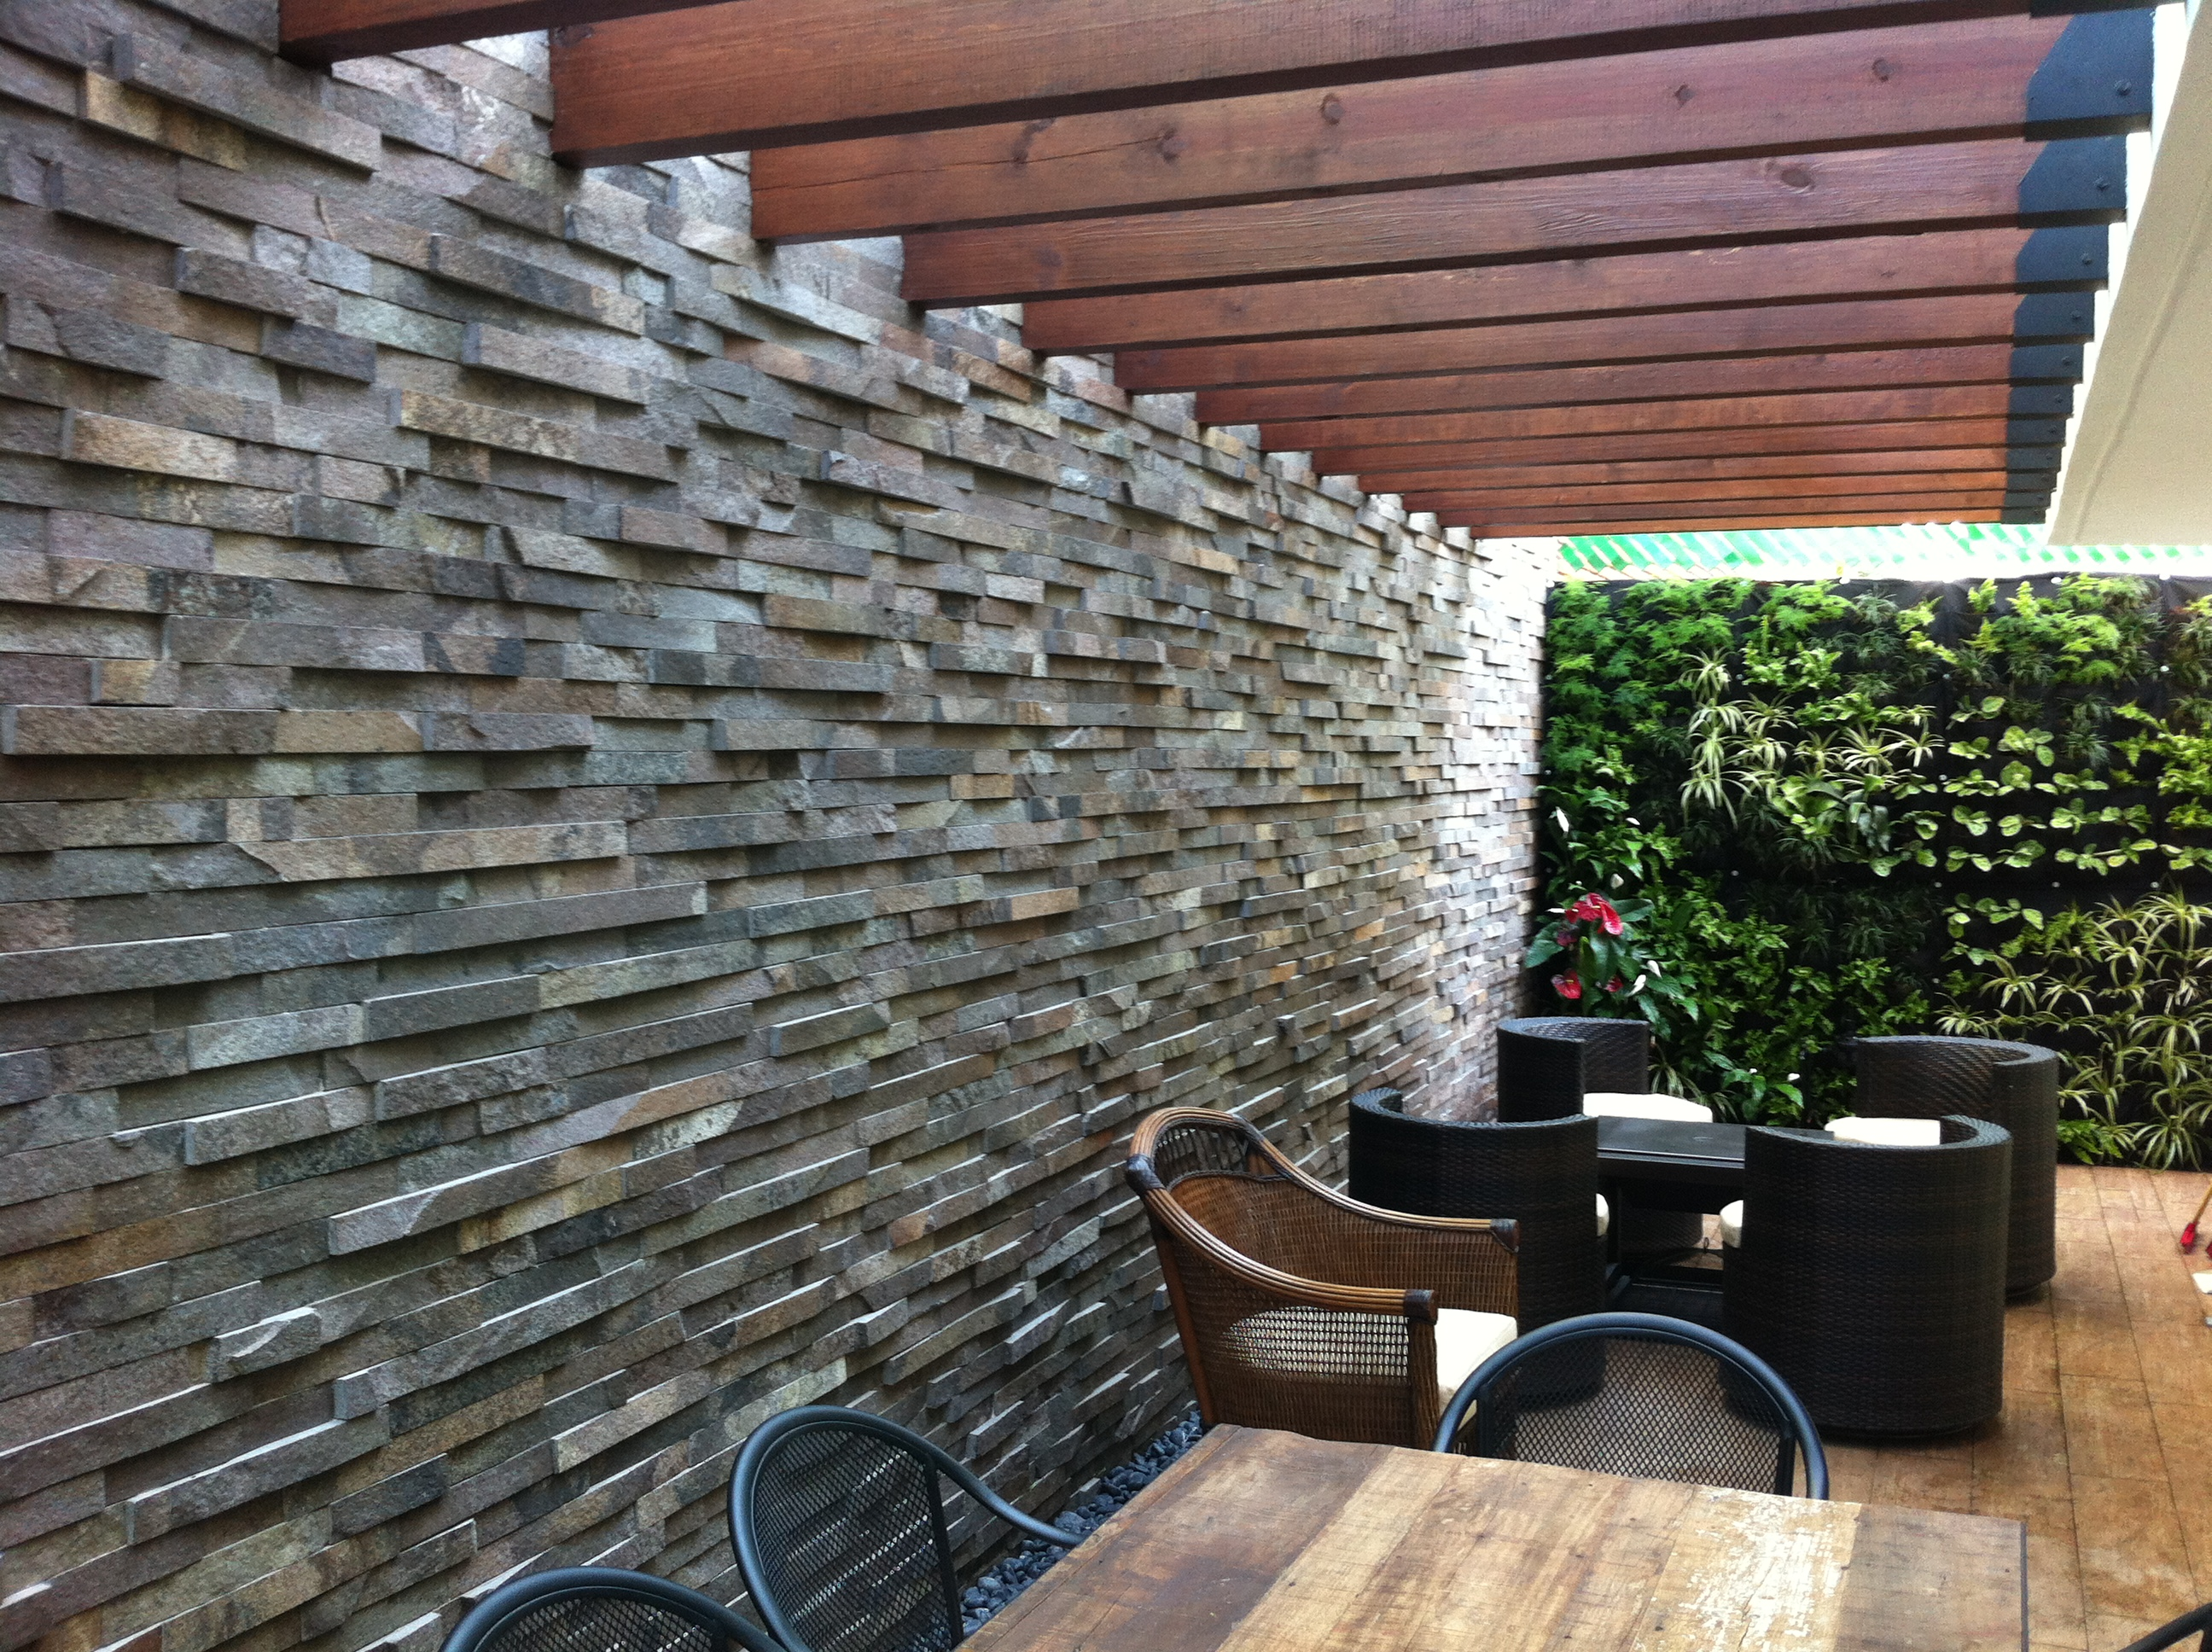 KCiRE-living wall / MEGA arquitectur